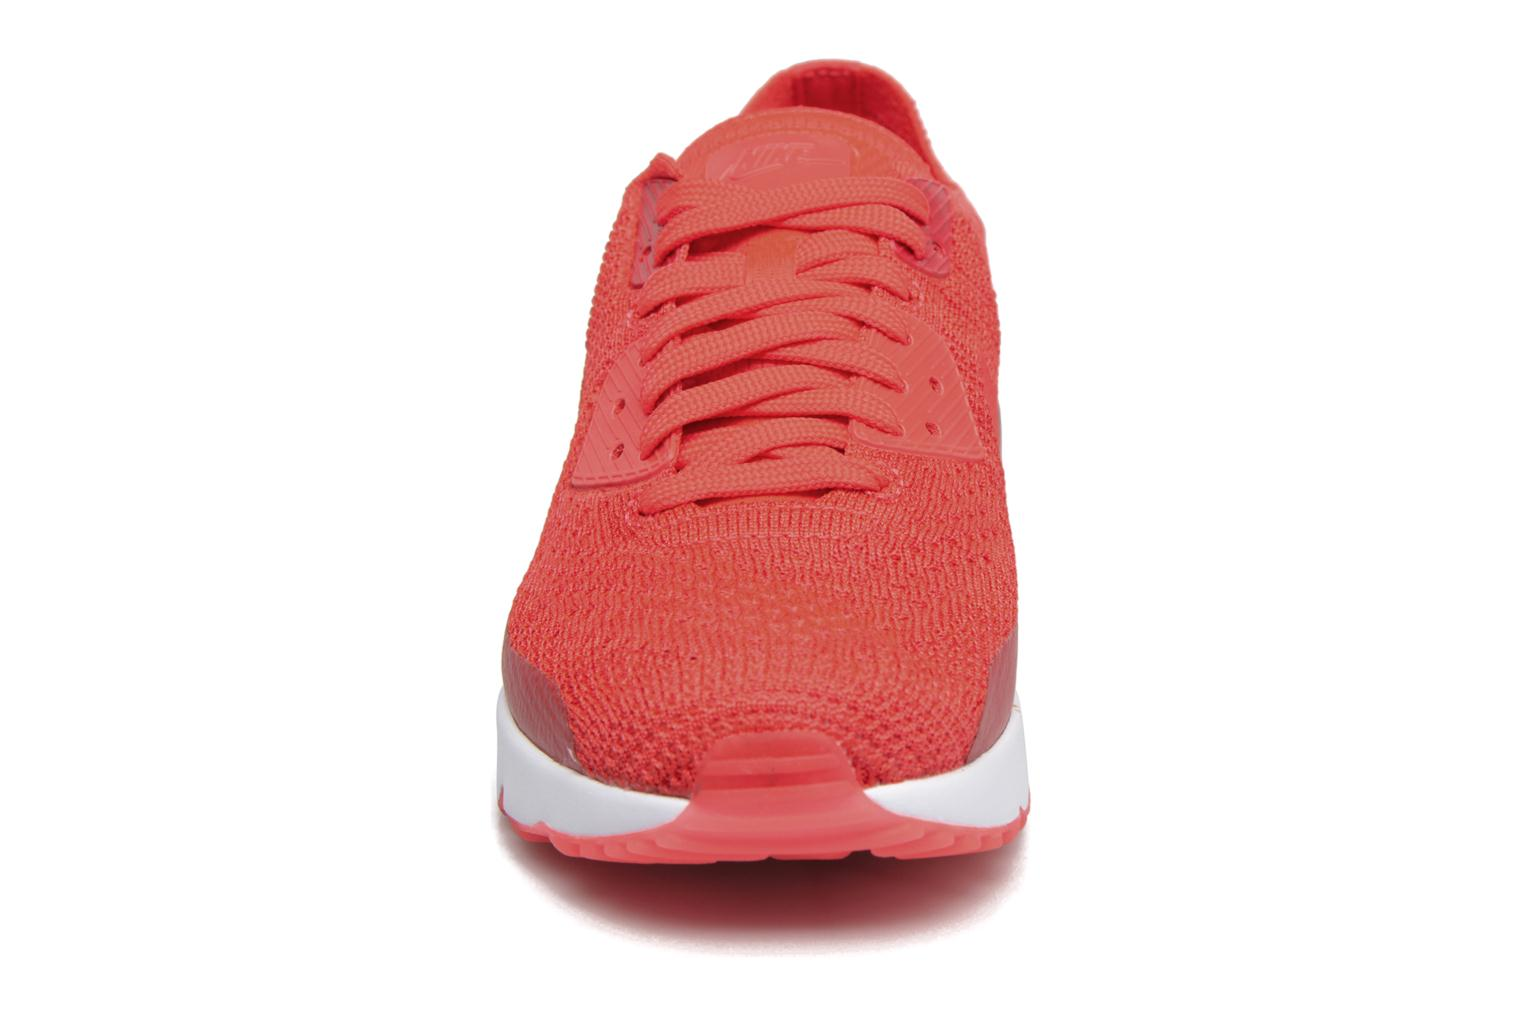 Air Max 90 Ultra 2.0 Flyknit BRIGHT CRIMSON/BRIGHT CRIMSON